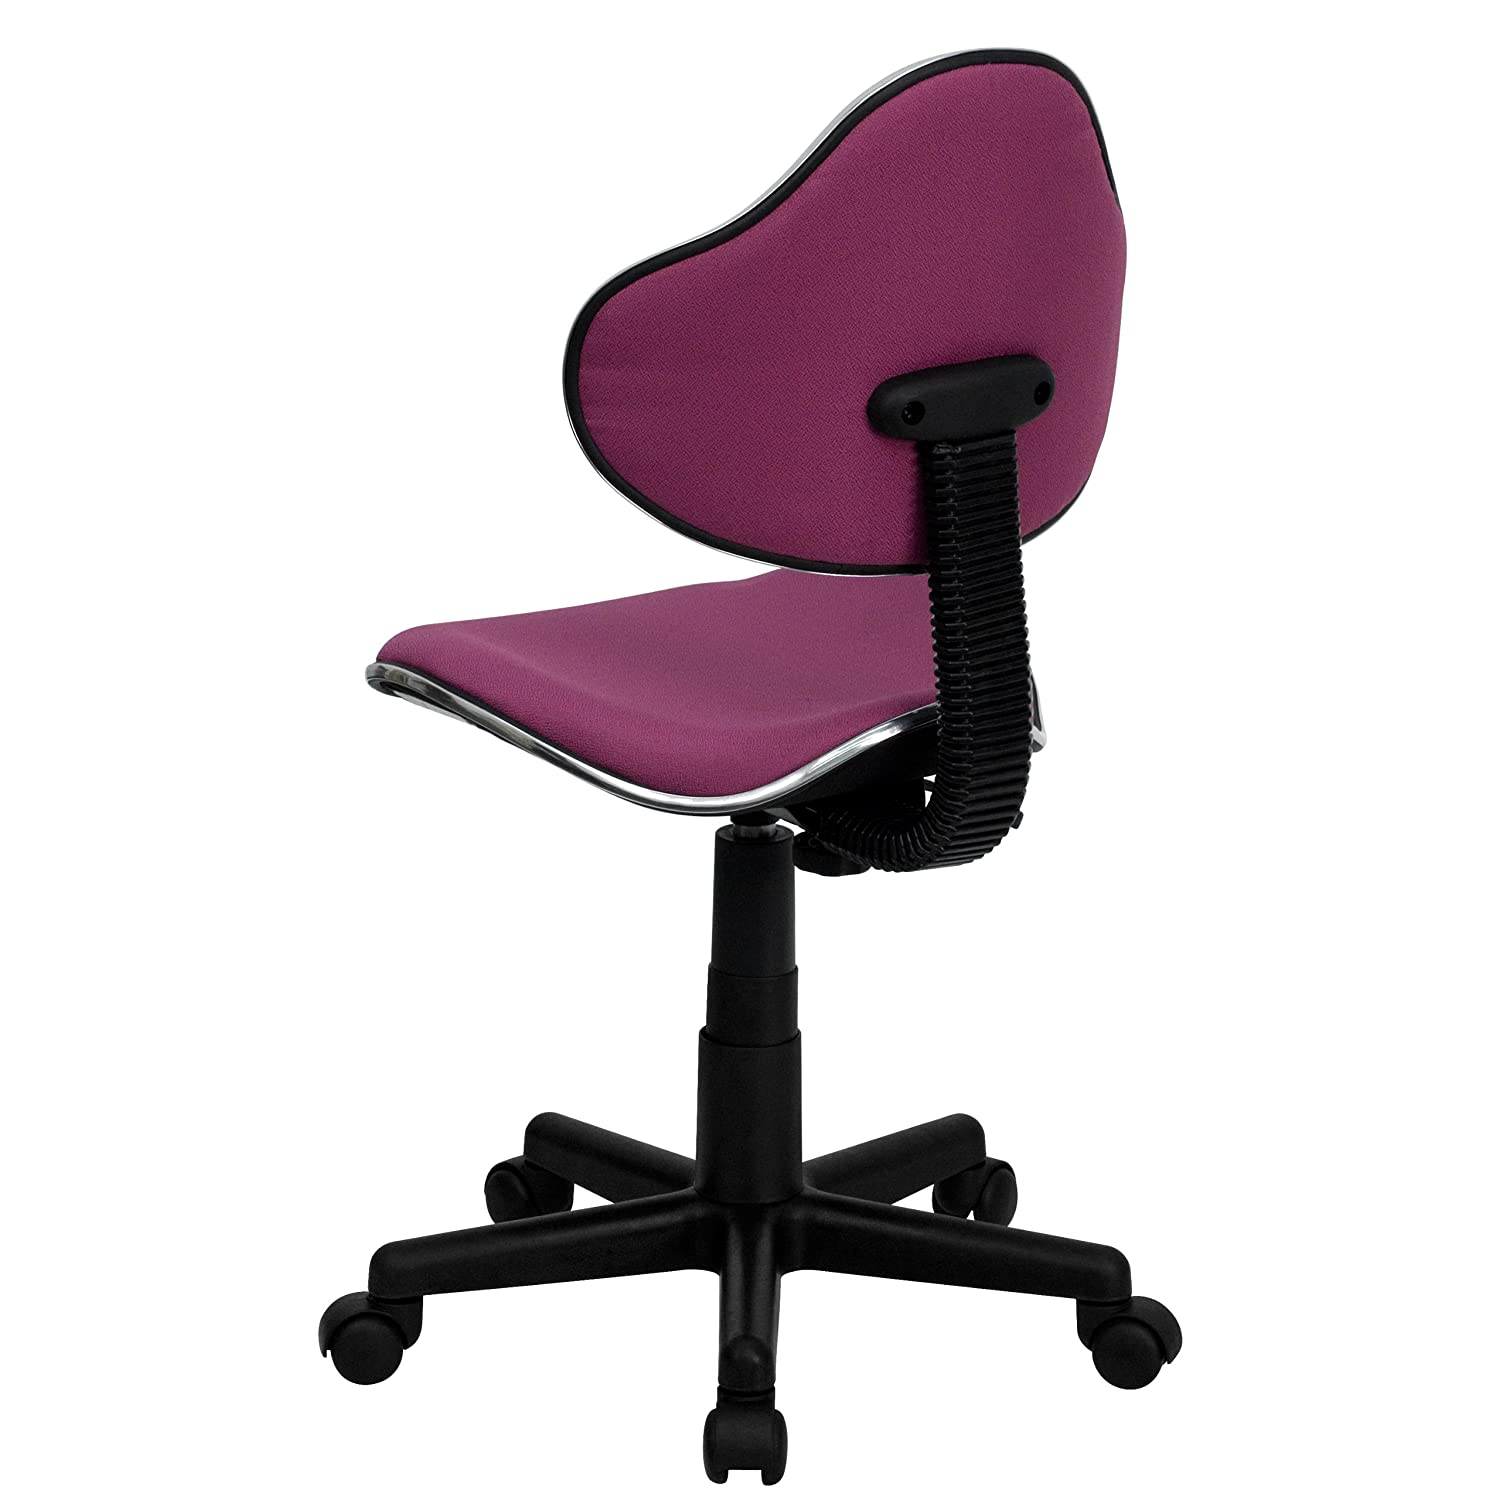 chair for zgs ygd school double modern desk china furniture student deskchair concept